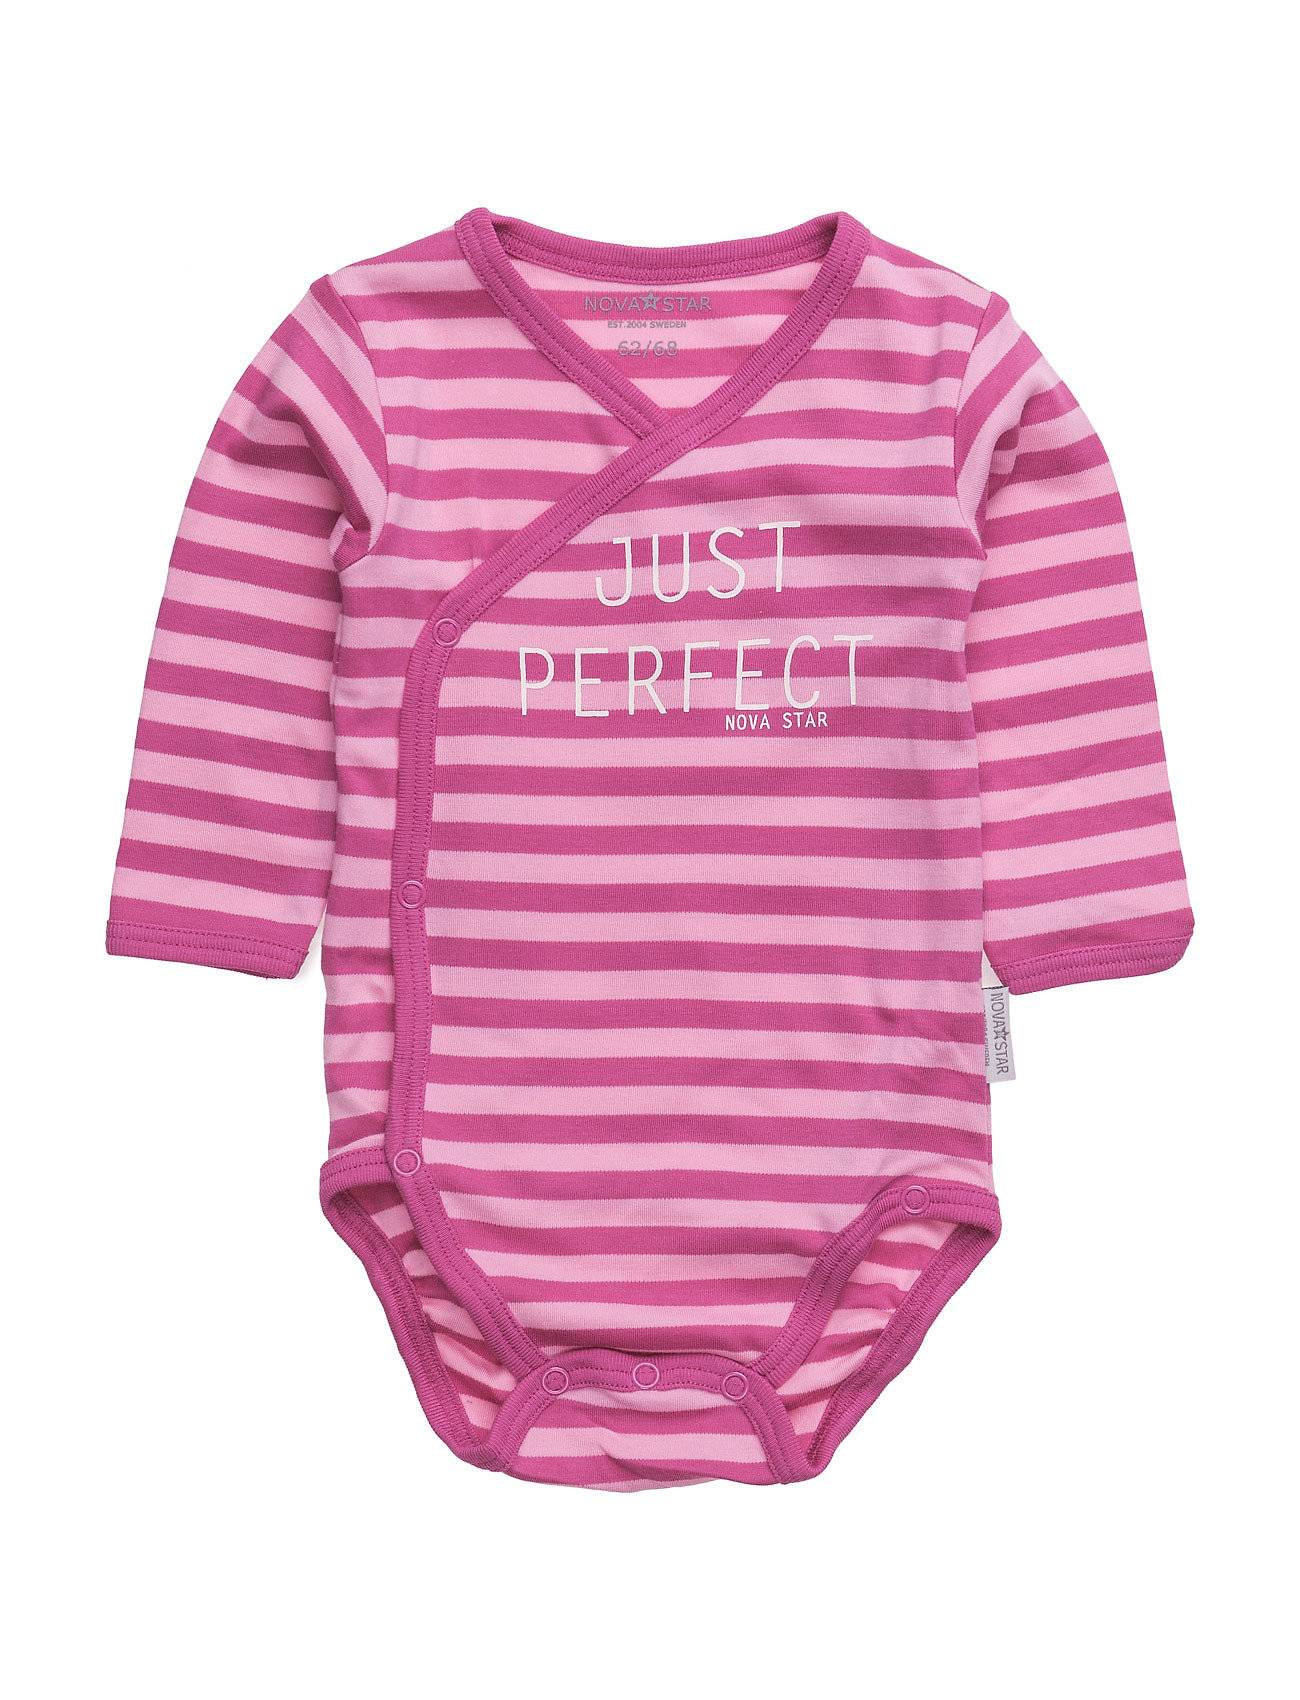 NOVA STAR Pink Striped Wrap Bo